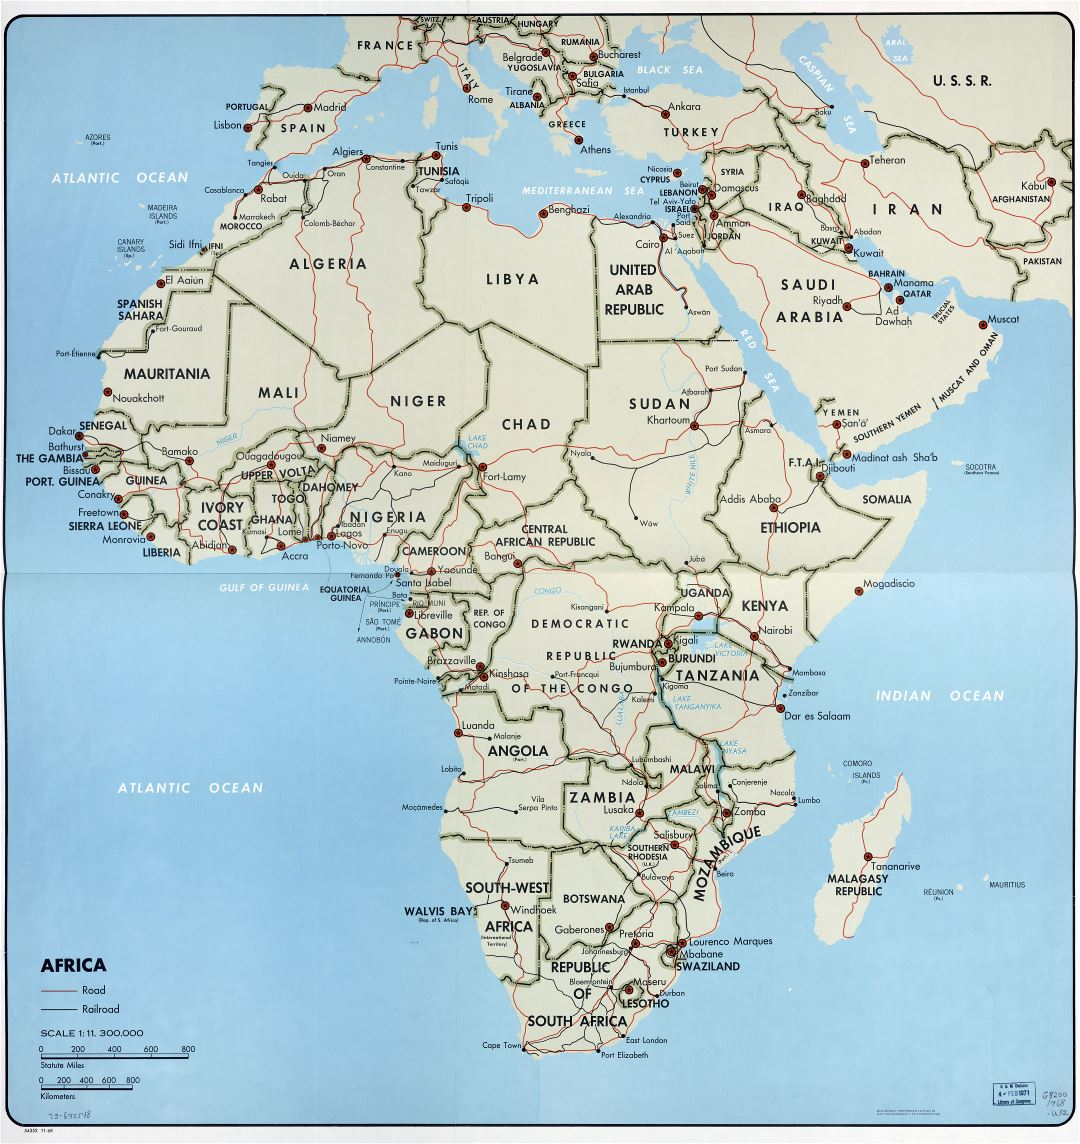 Map Of Africa With Countries And Capitals.In High Resolution Detailed Political Map Of Africa With The Marks